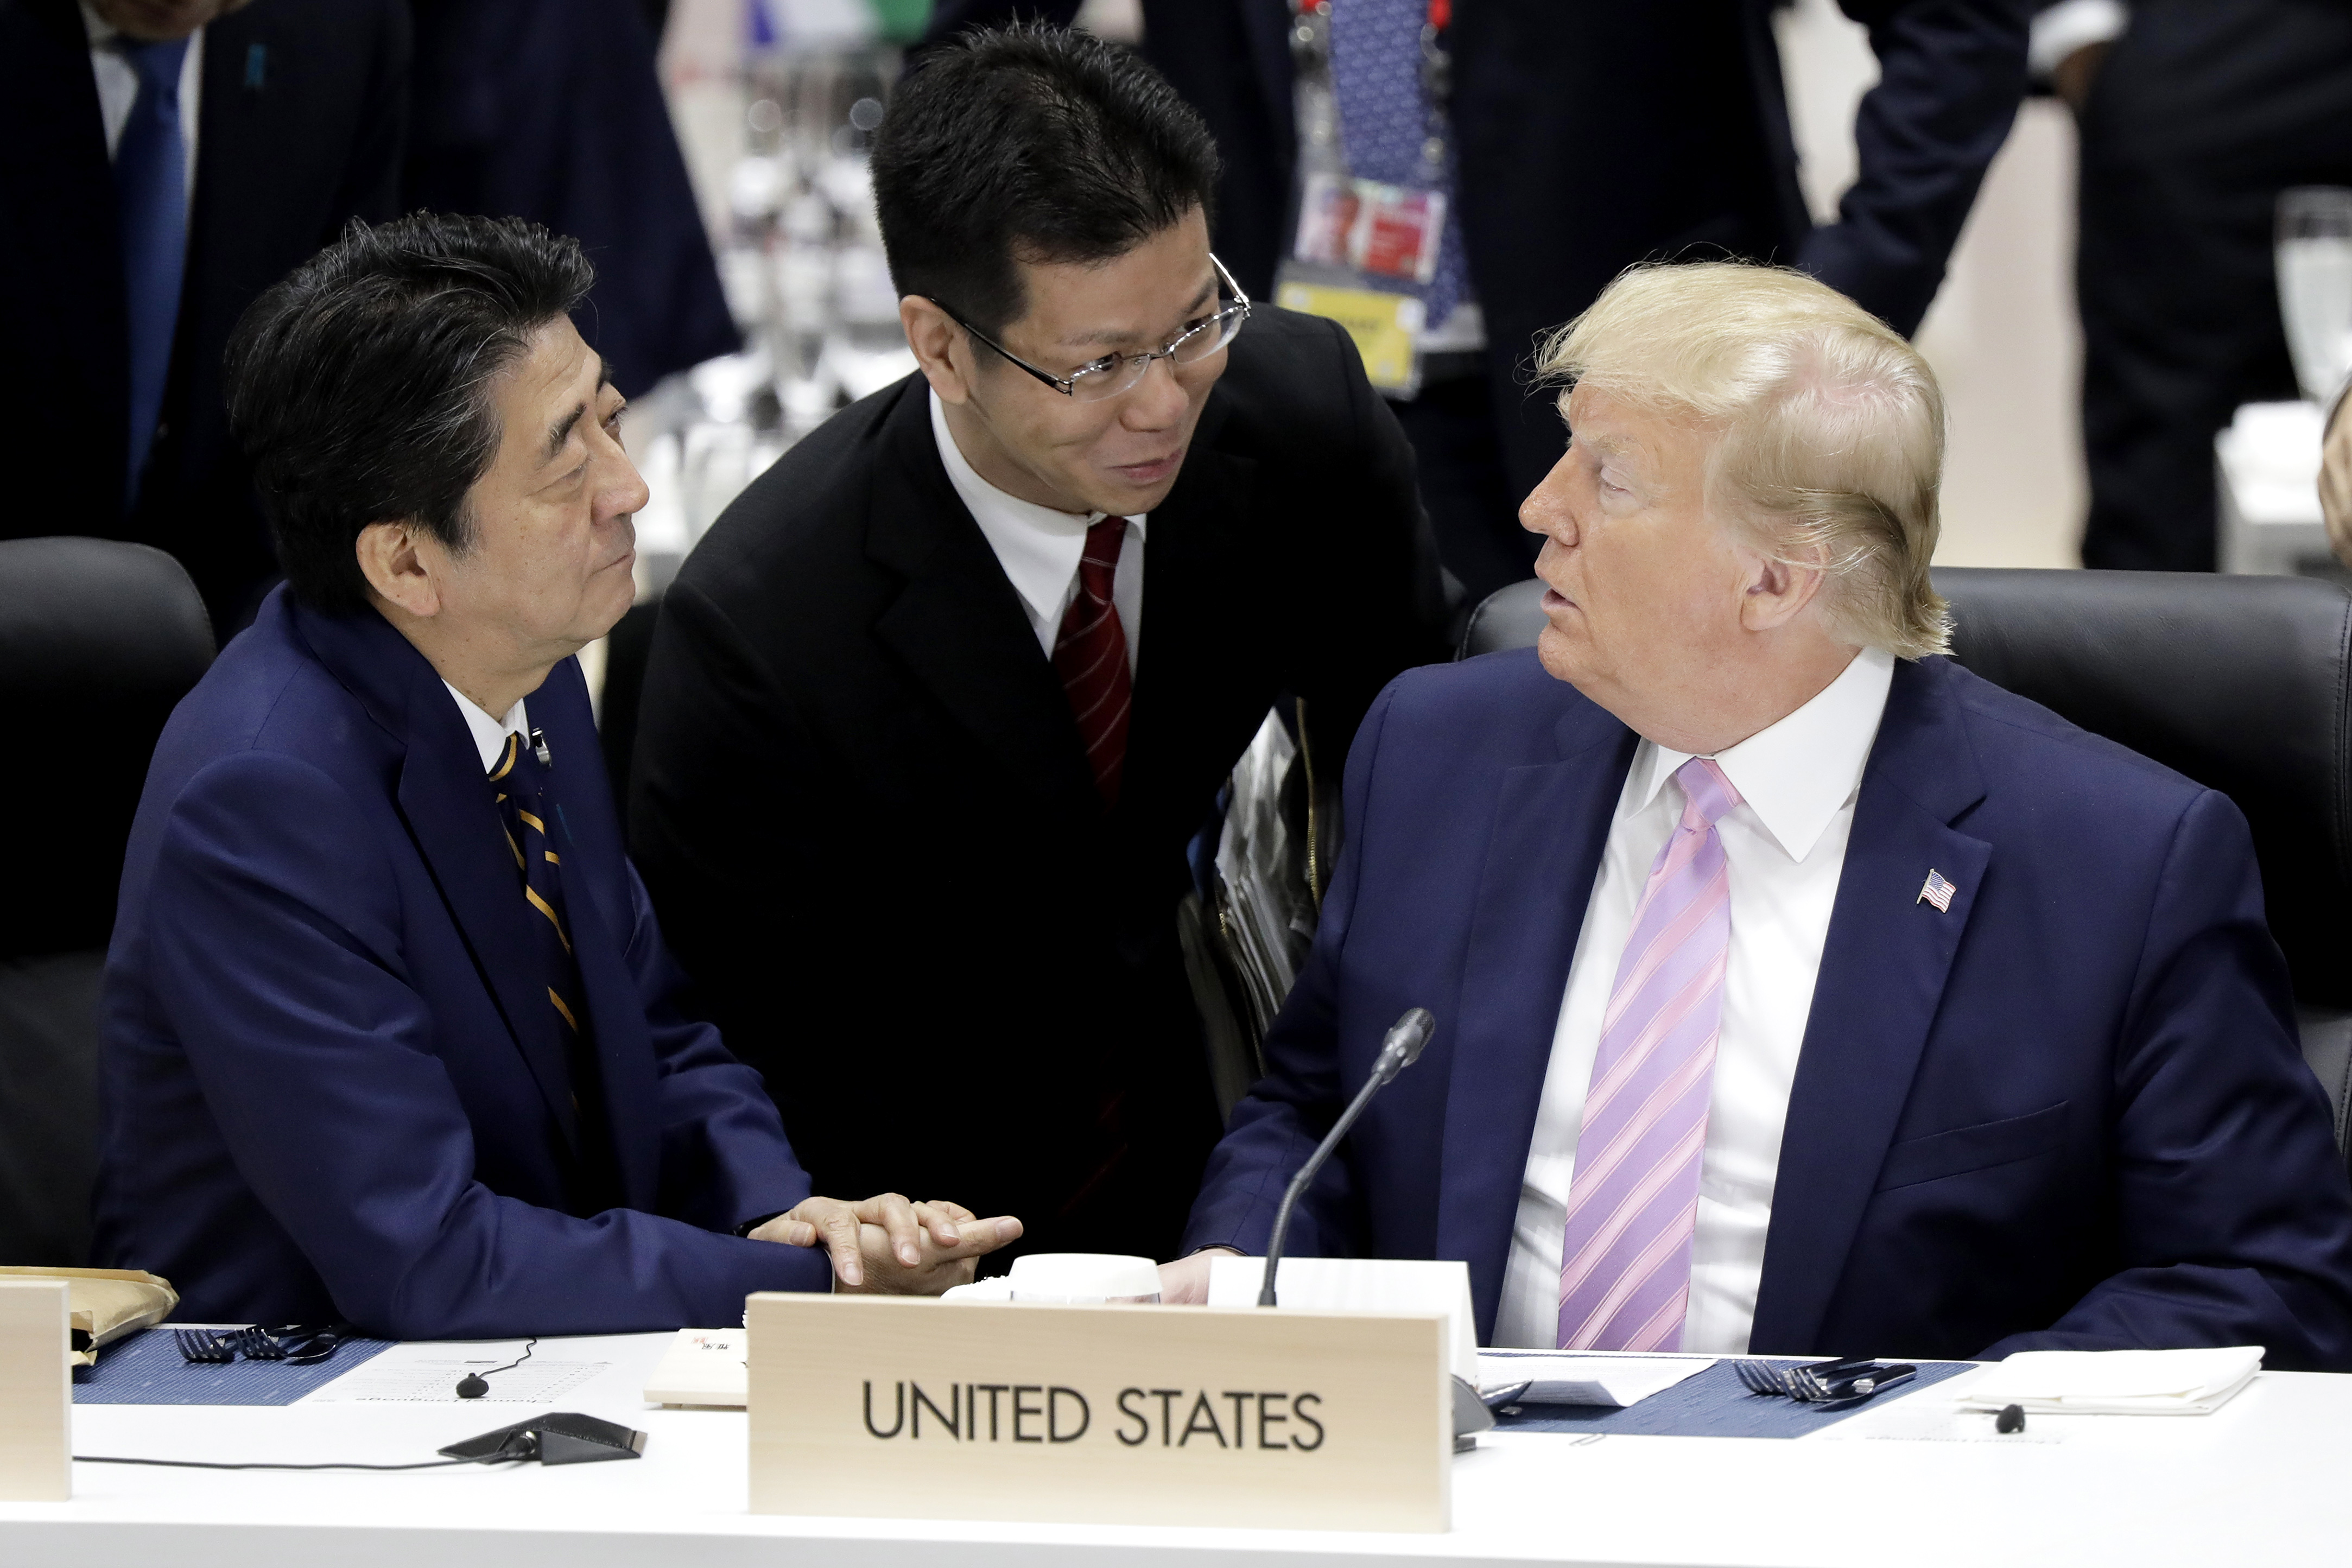 President Donald Trump is waging both a trade war and an emergency currency war. It will be hard for him to win both. He has complained that the value of the Euro and the Yen are too high compared to the dollar. He is seen at the G20 Summit in June 2019 with Japanese Prime Minister Shinzo Abe (left).